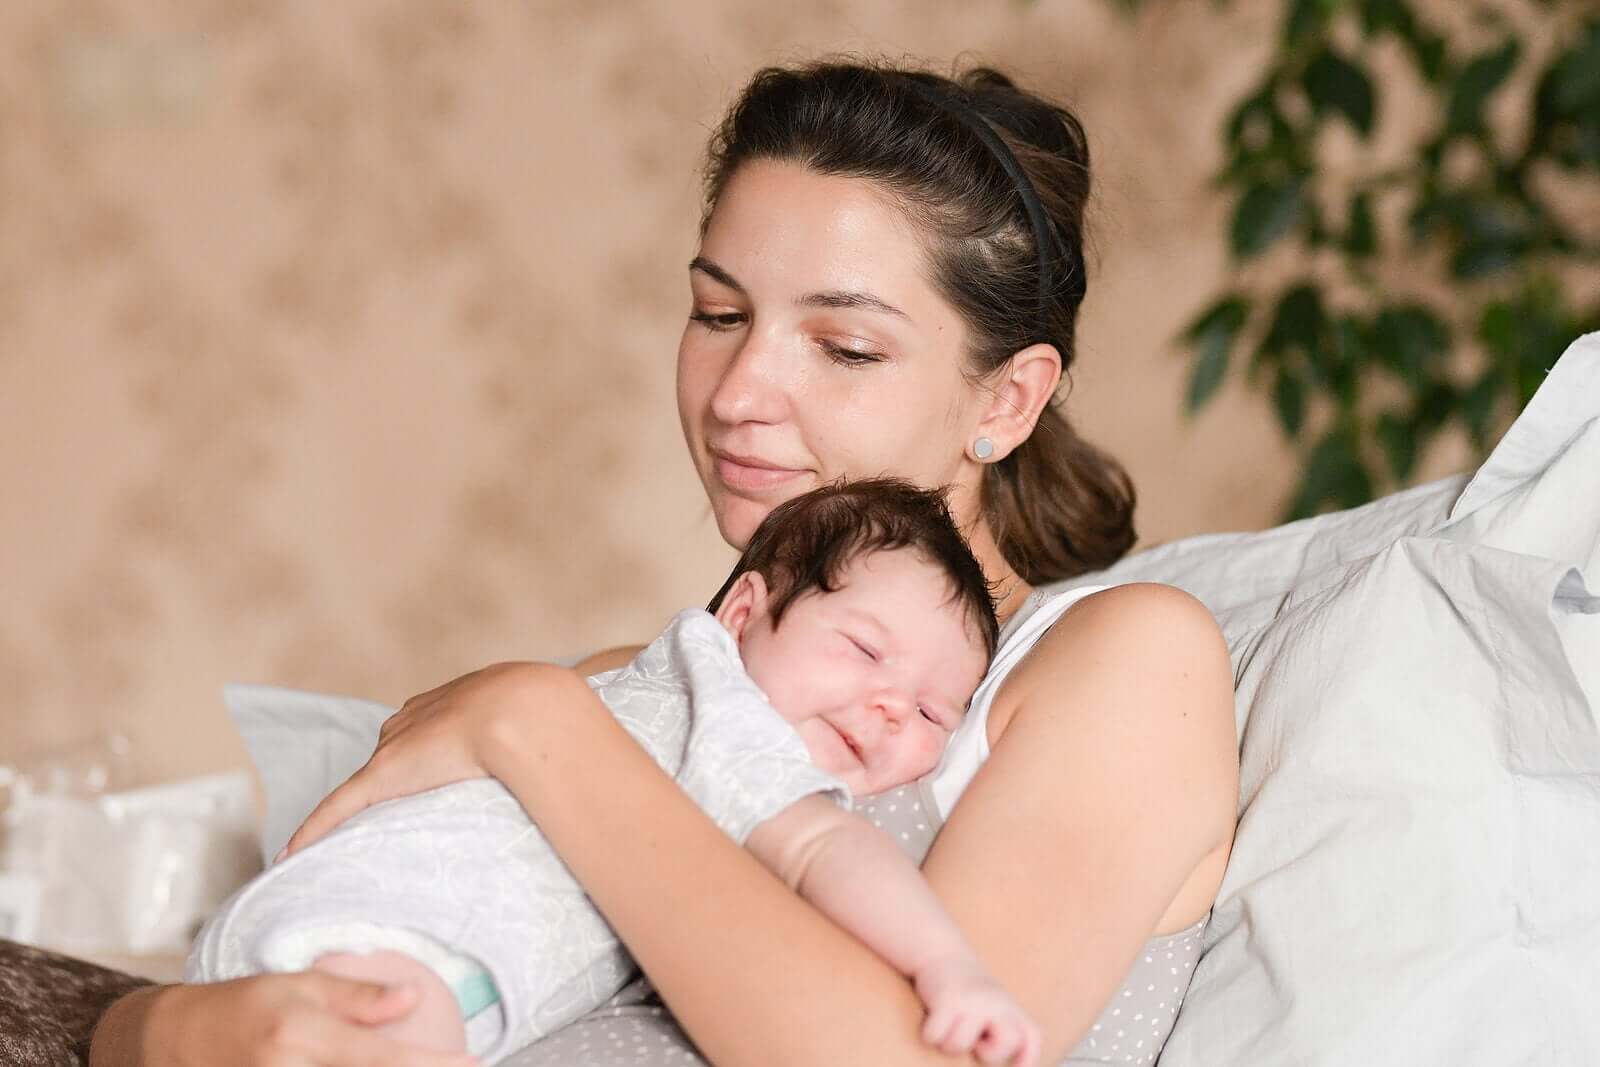 Five Ways to Connect with Your Baby